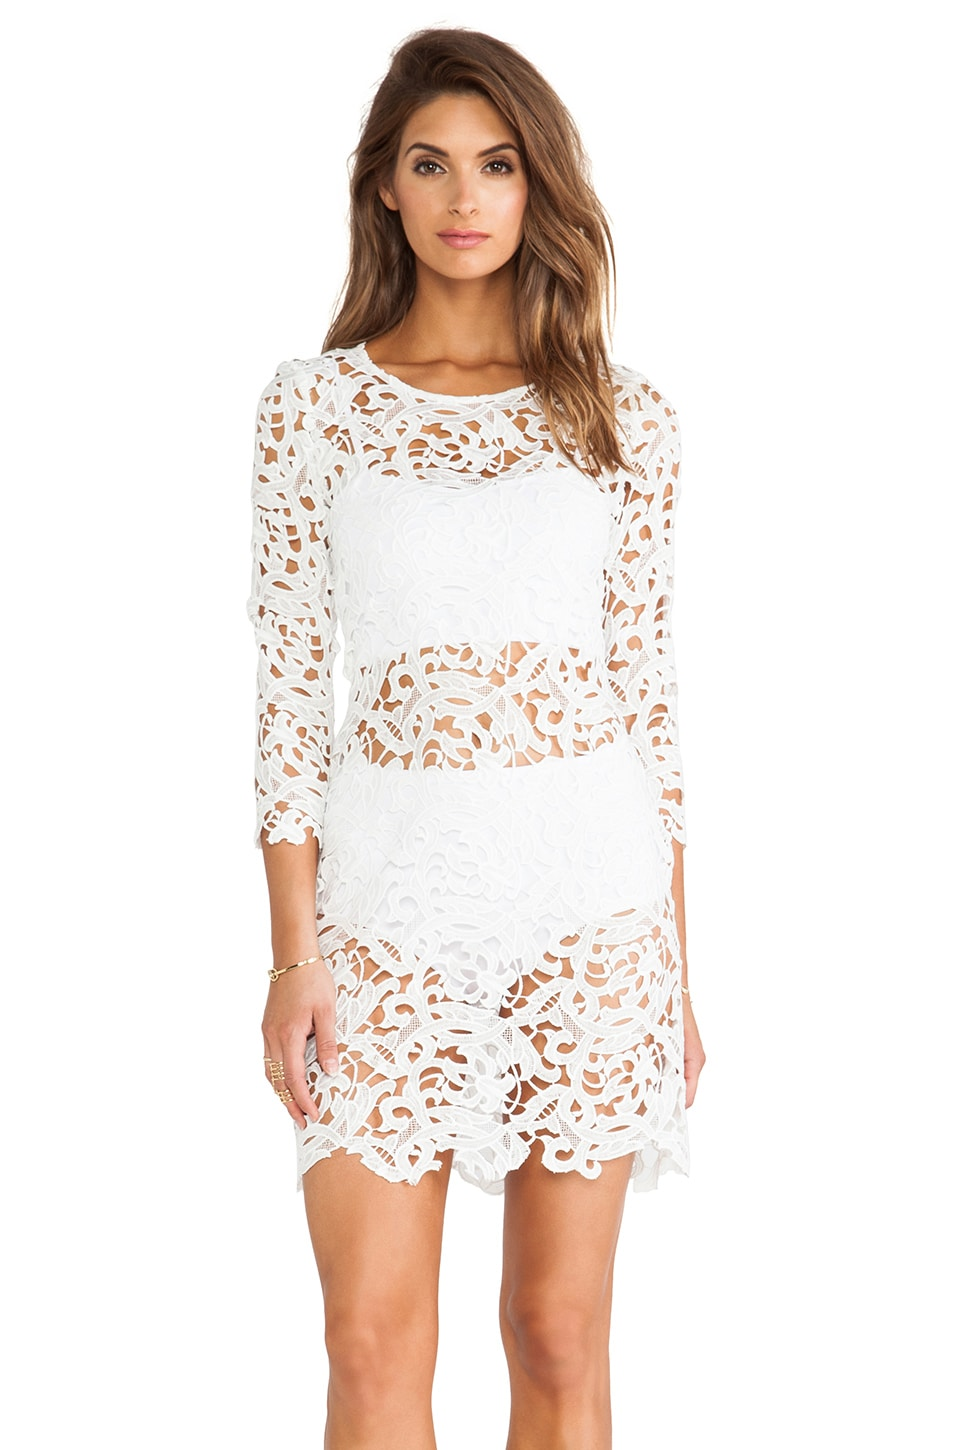 Assali Chloe Dress in White